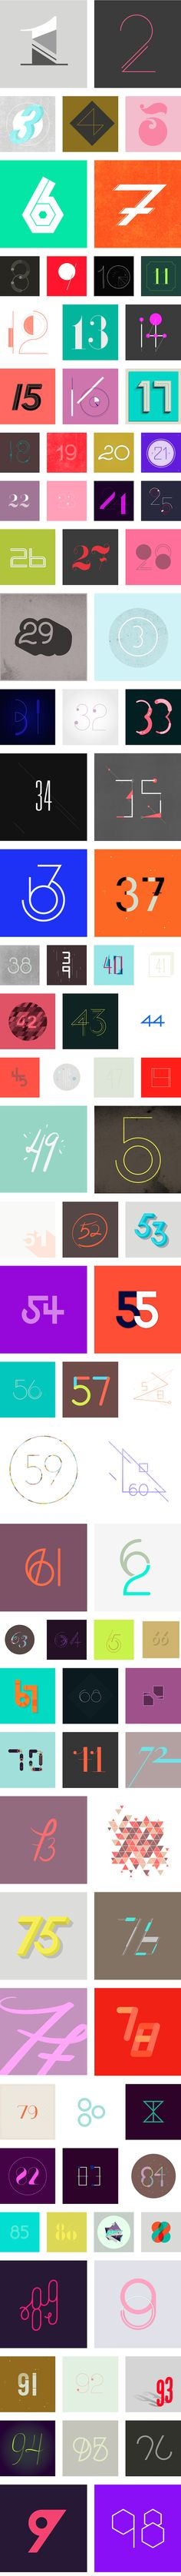 365 Days of Type: A Daily Numerical Font for Every Day of the Year 2013 by Sabrina Smelko